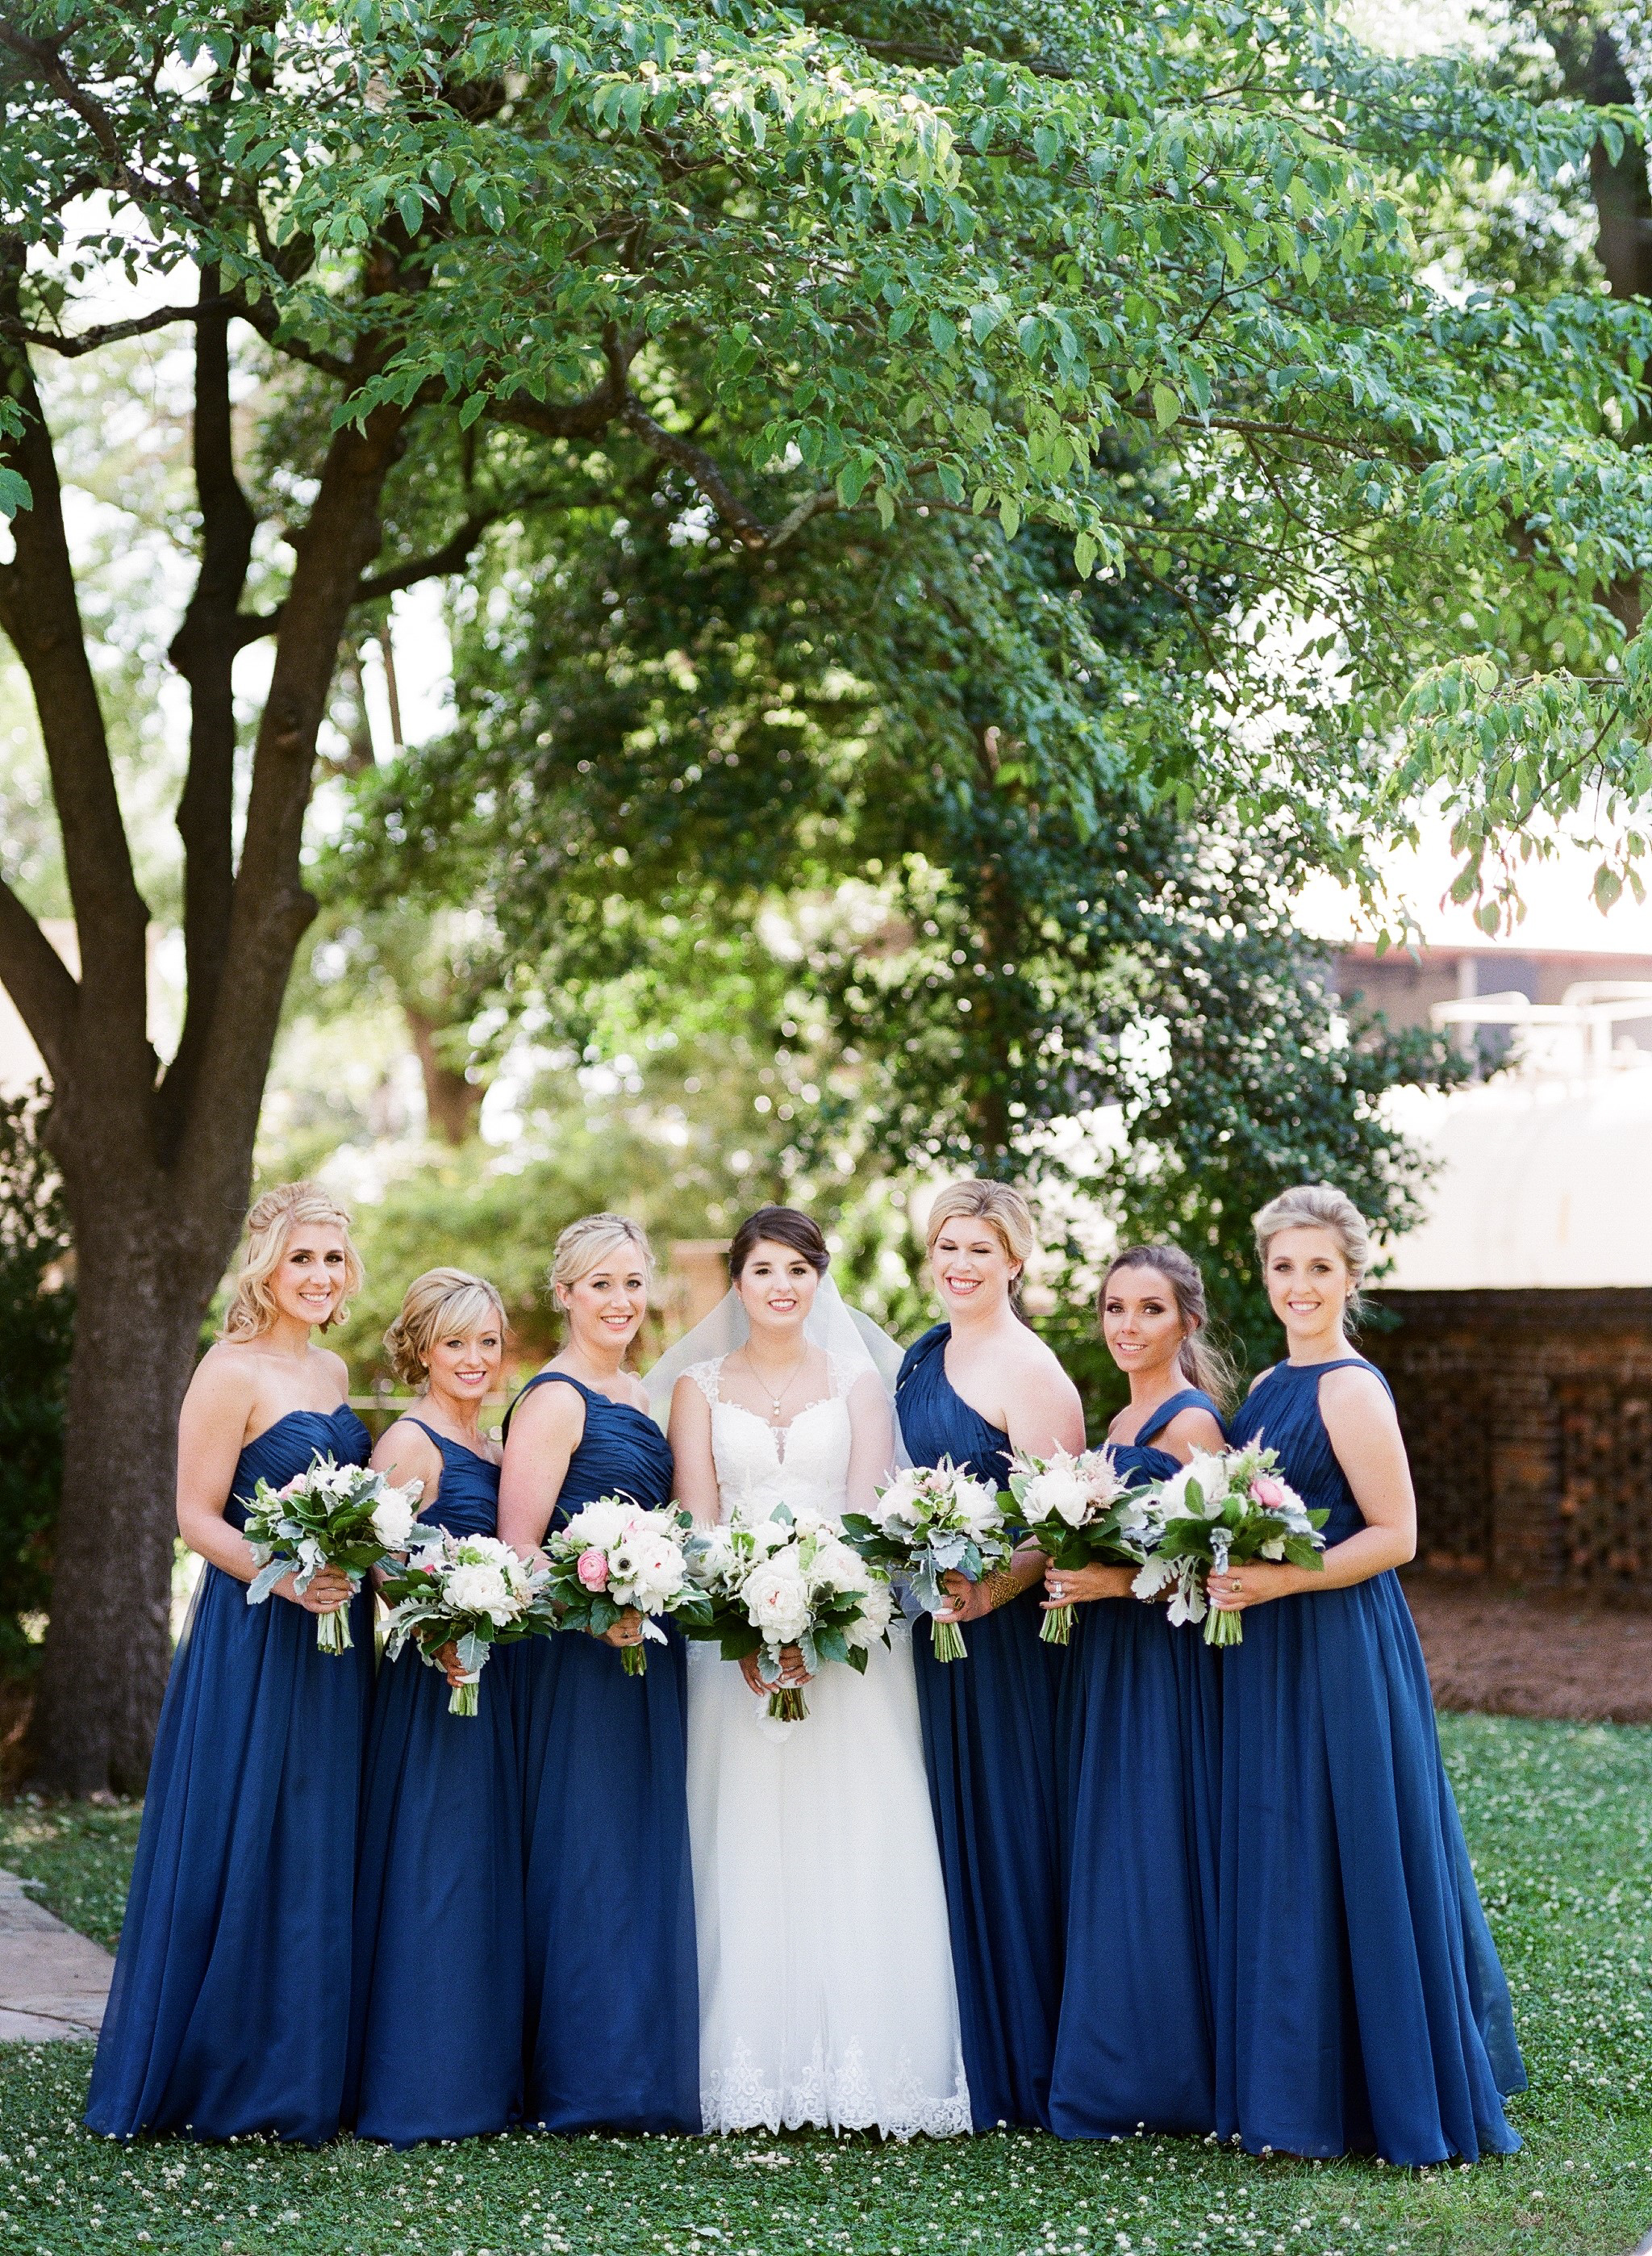 Binford & Bridal Party